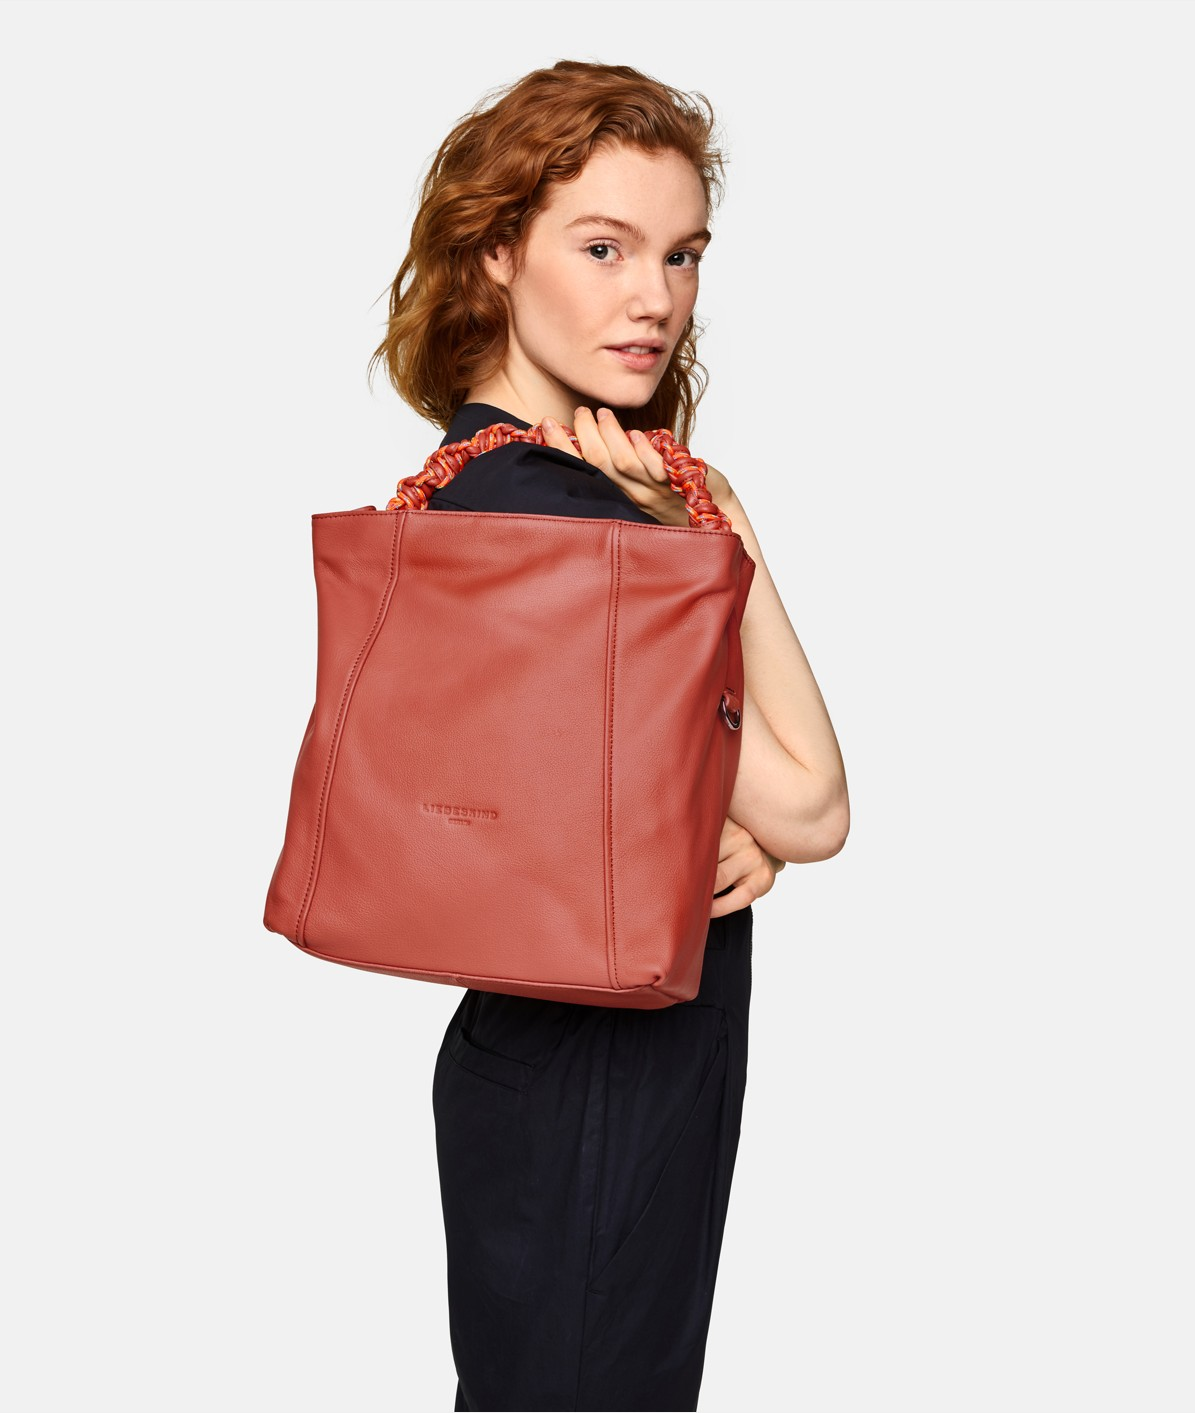 Hobo Bag with neoprene lining and a hand-woven handle from liebeskind